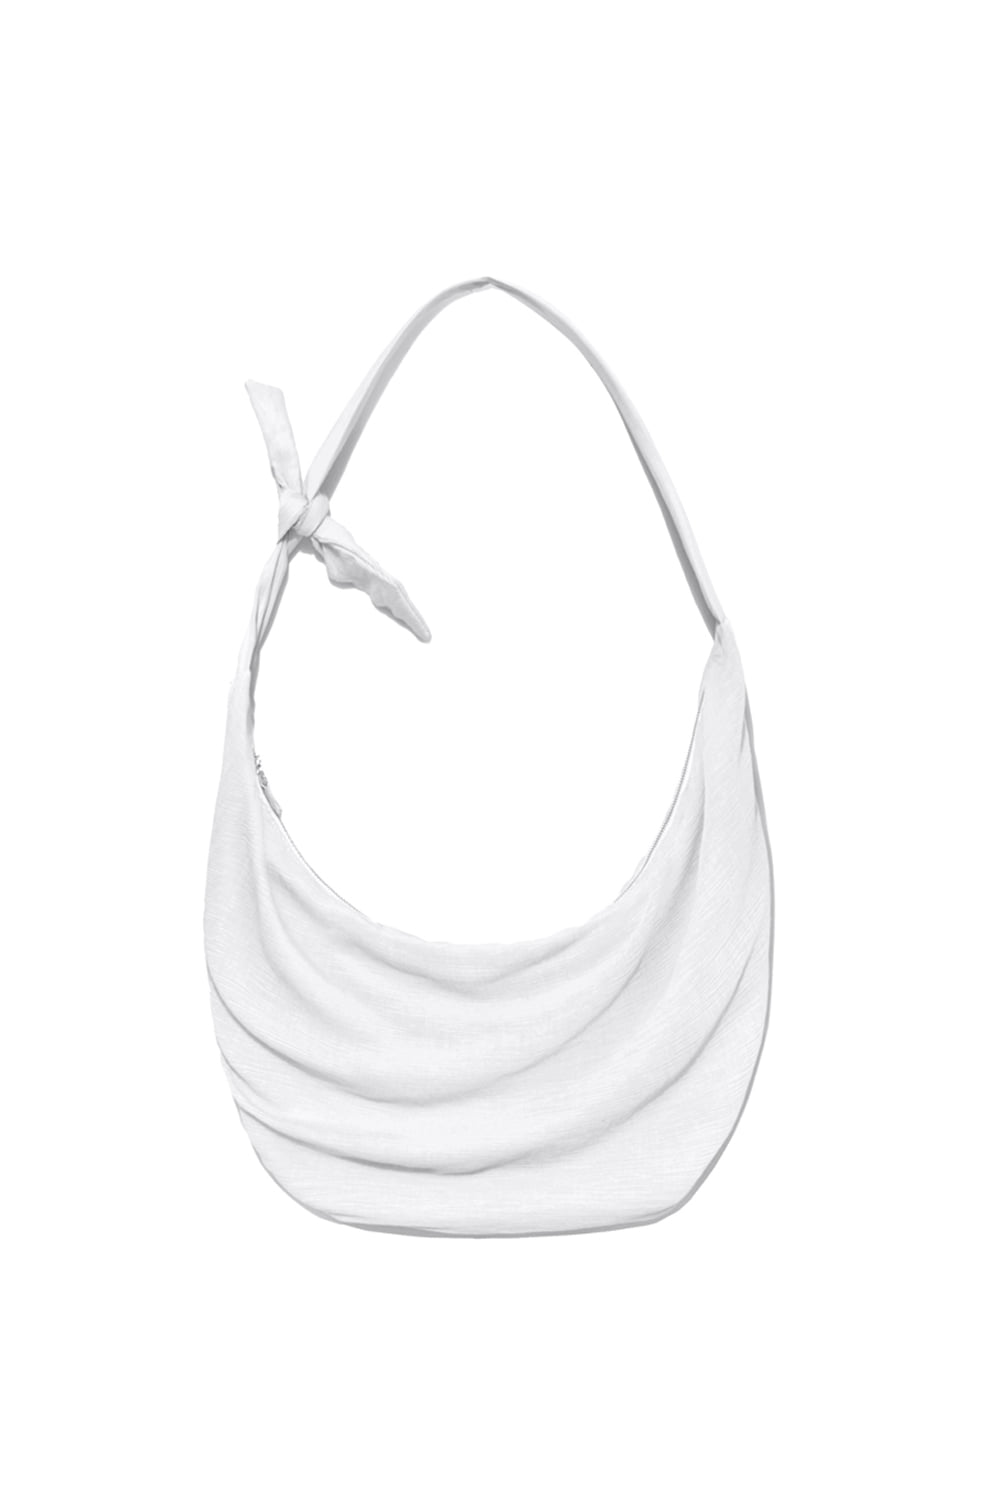 Knot Pleats Cross Bag Women [White]